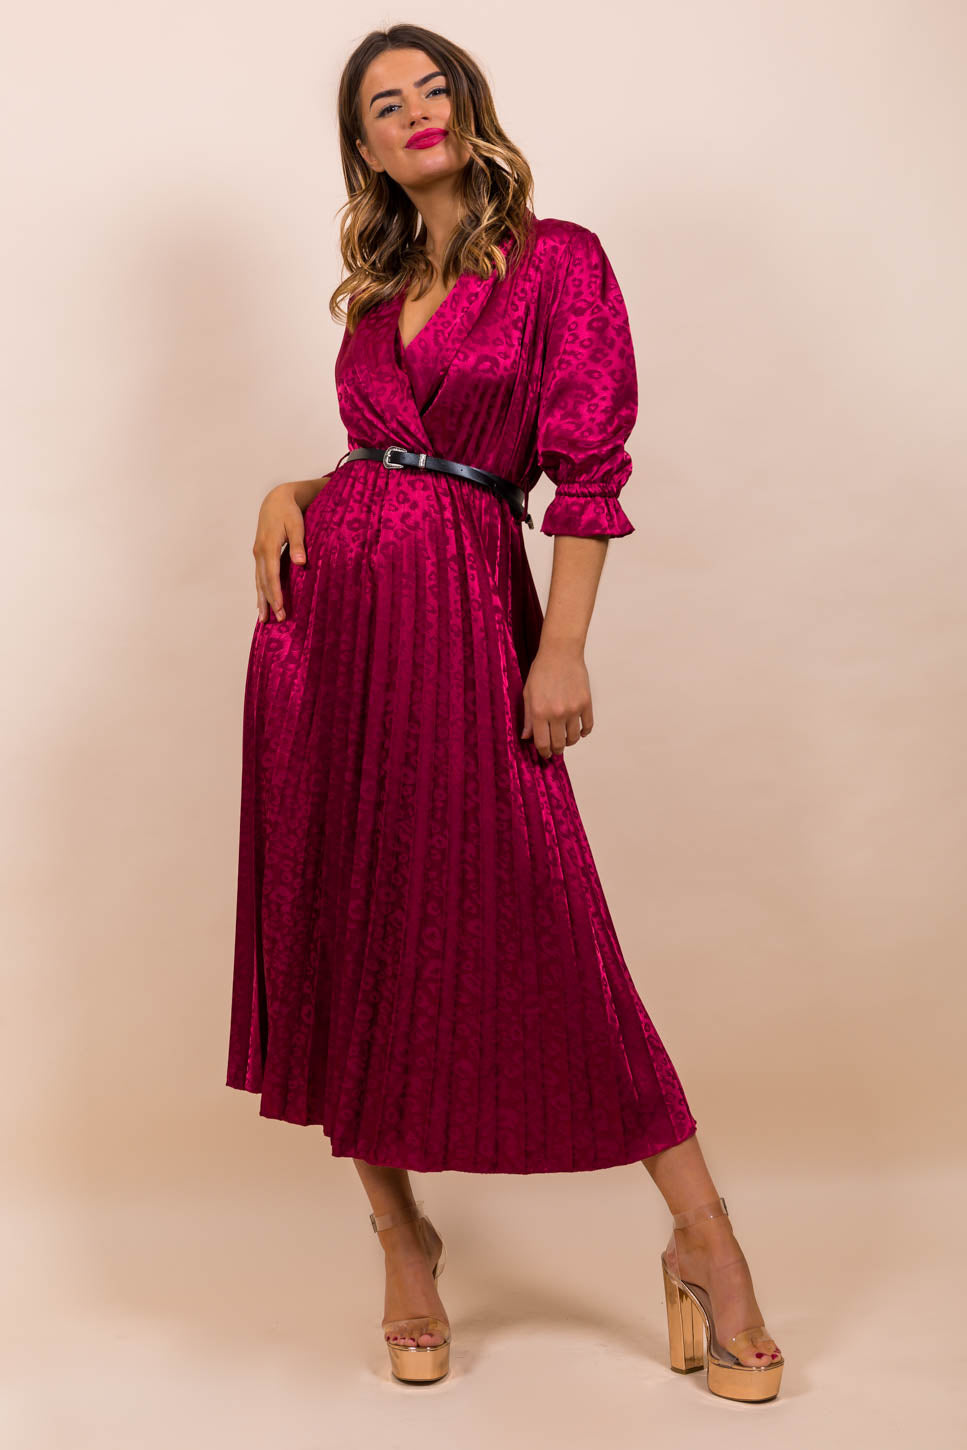 https://cdn.shopify.com/s/files/1/0062/6661/7925/files/product-video-finest-moment-dress-in-wine-western-belt.mp4?5988